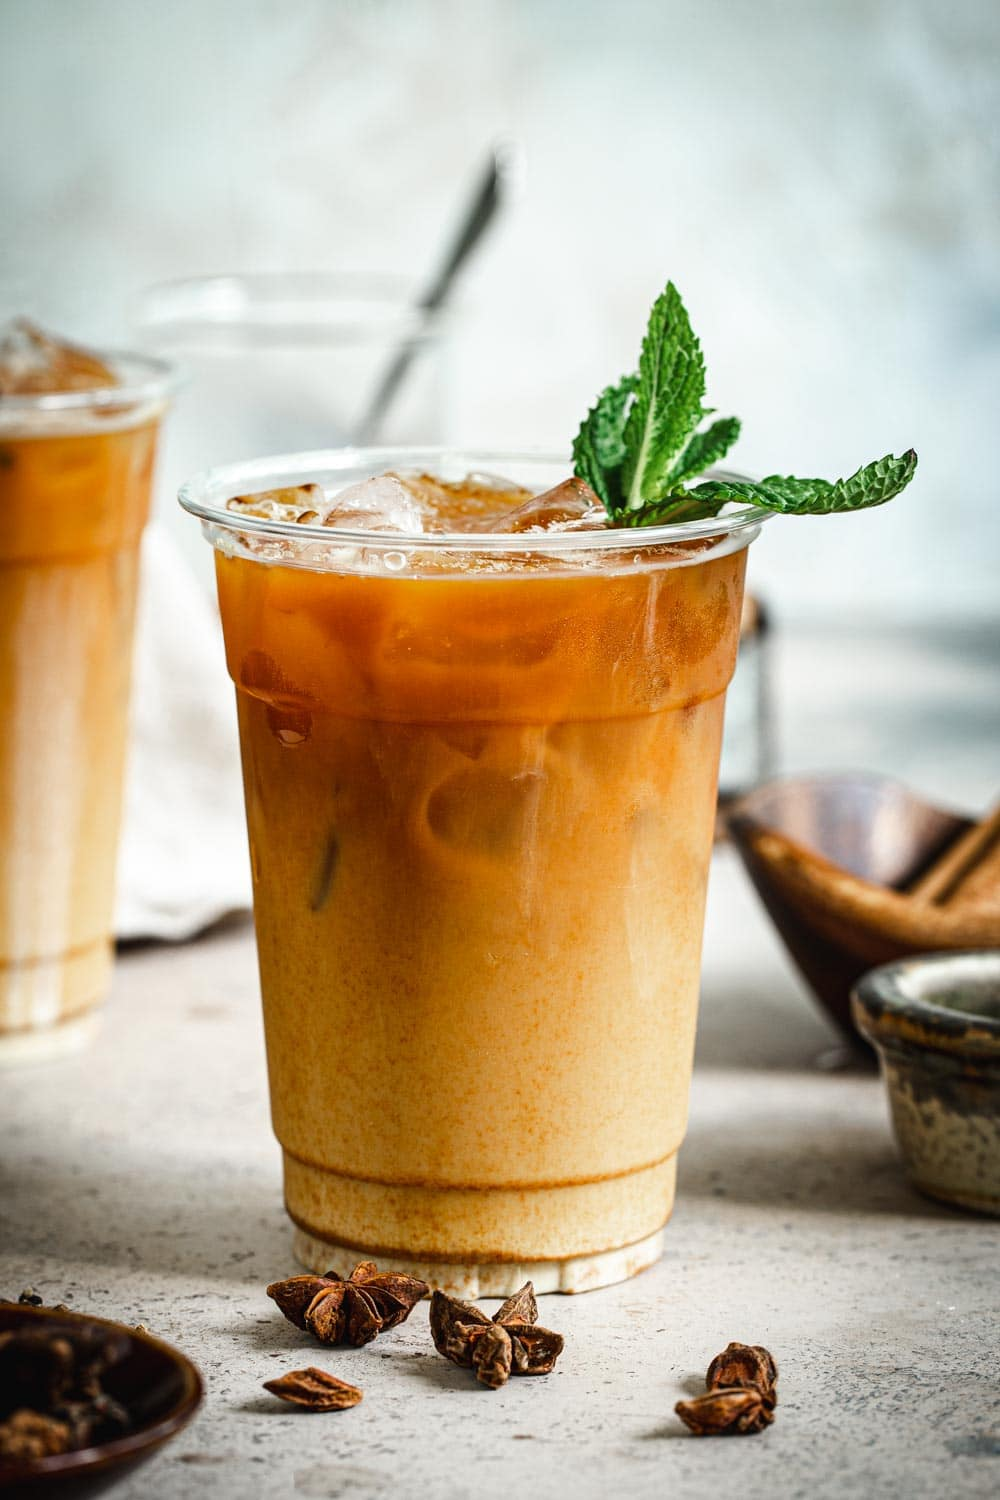 Homemade Thai iced tea in plastic cup with mint leaves.